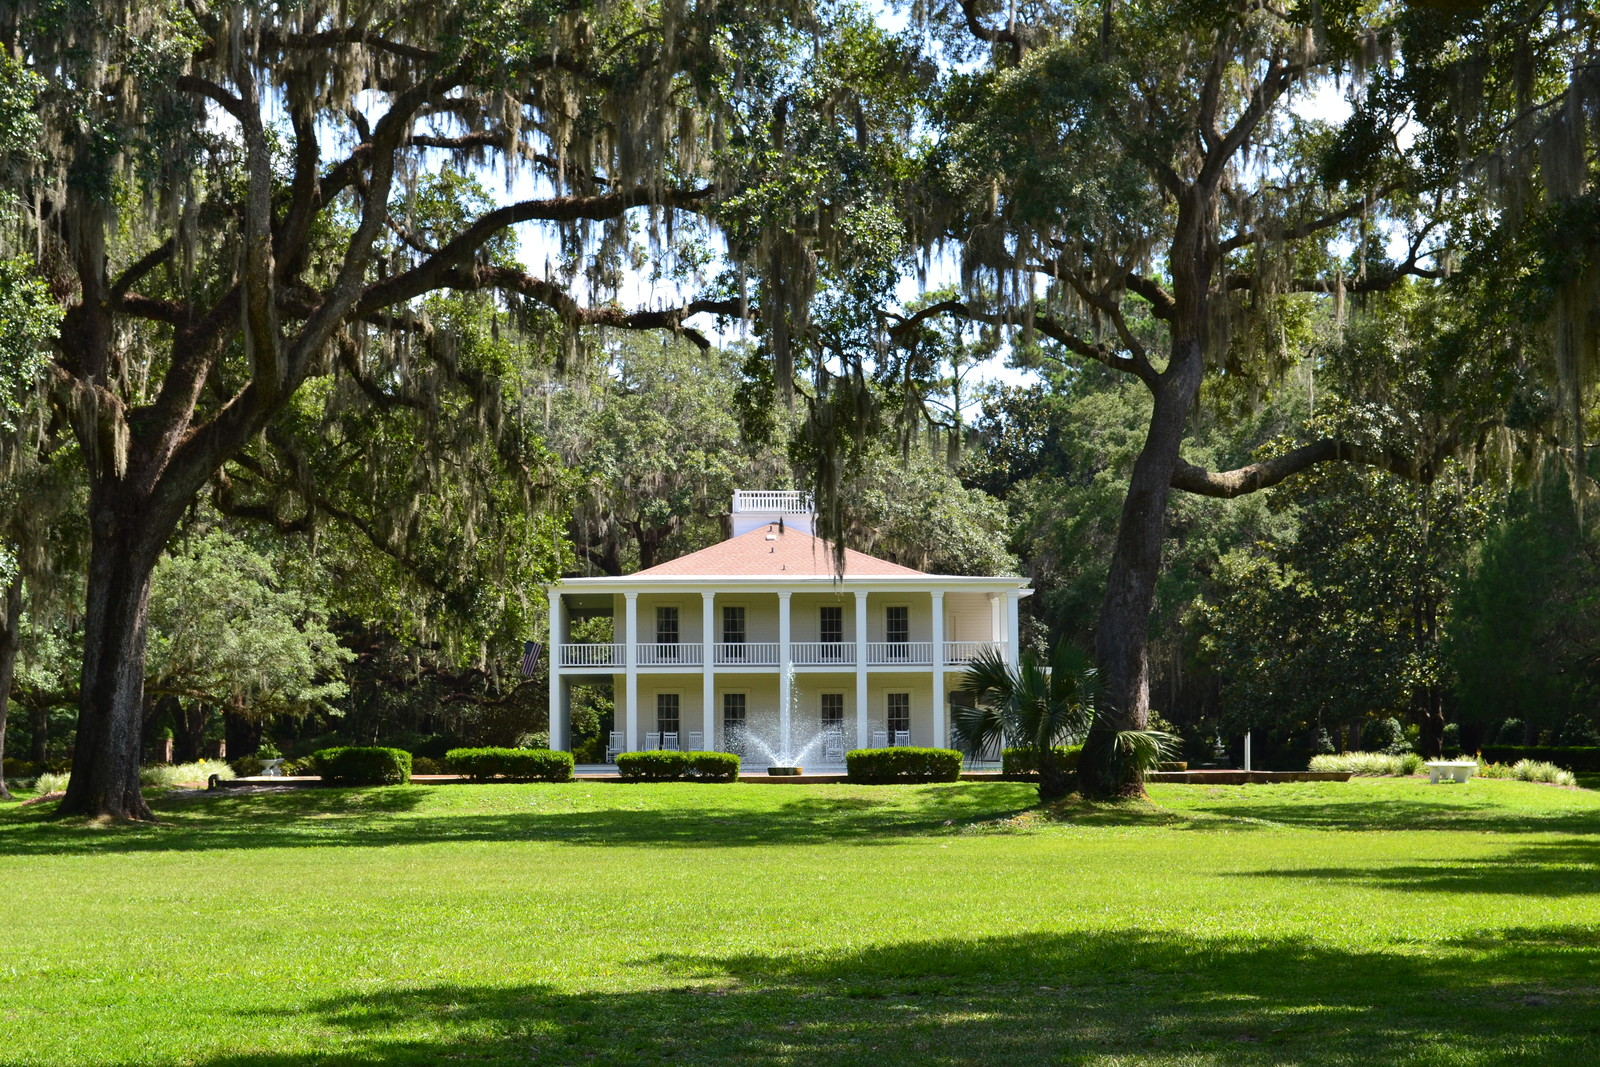 A classic antebellum mansion in the old south surrounded by live oaks draped in Spanish moss.